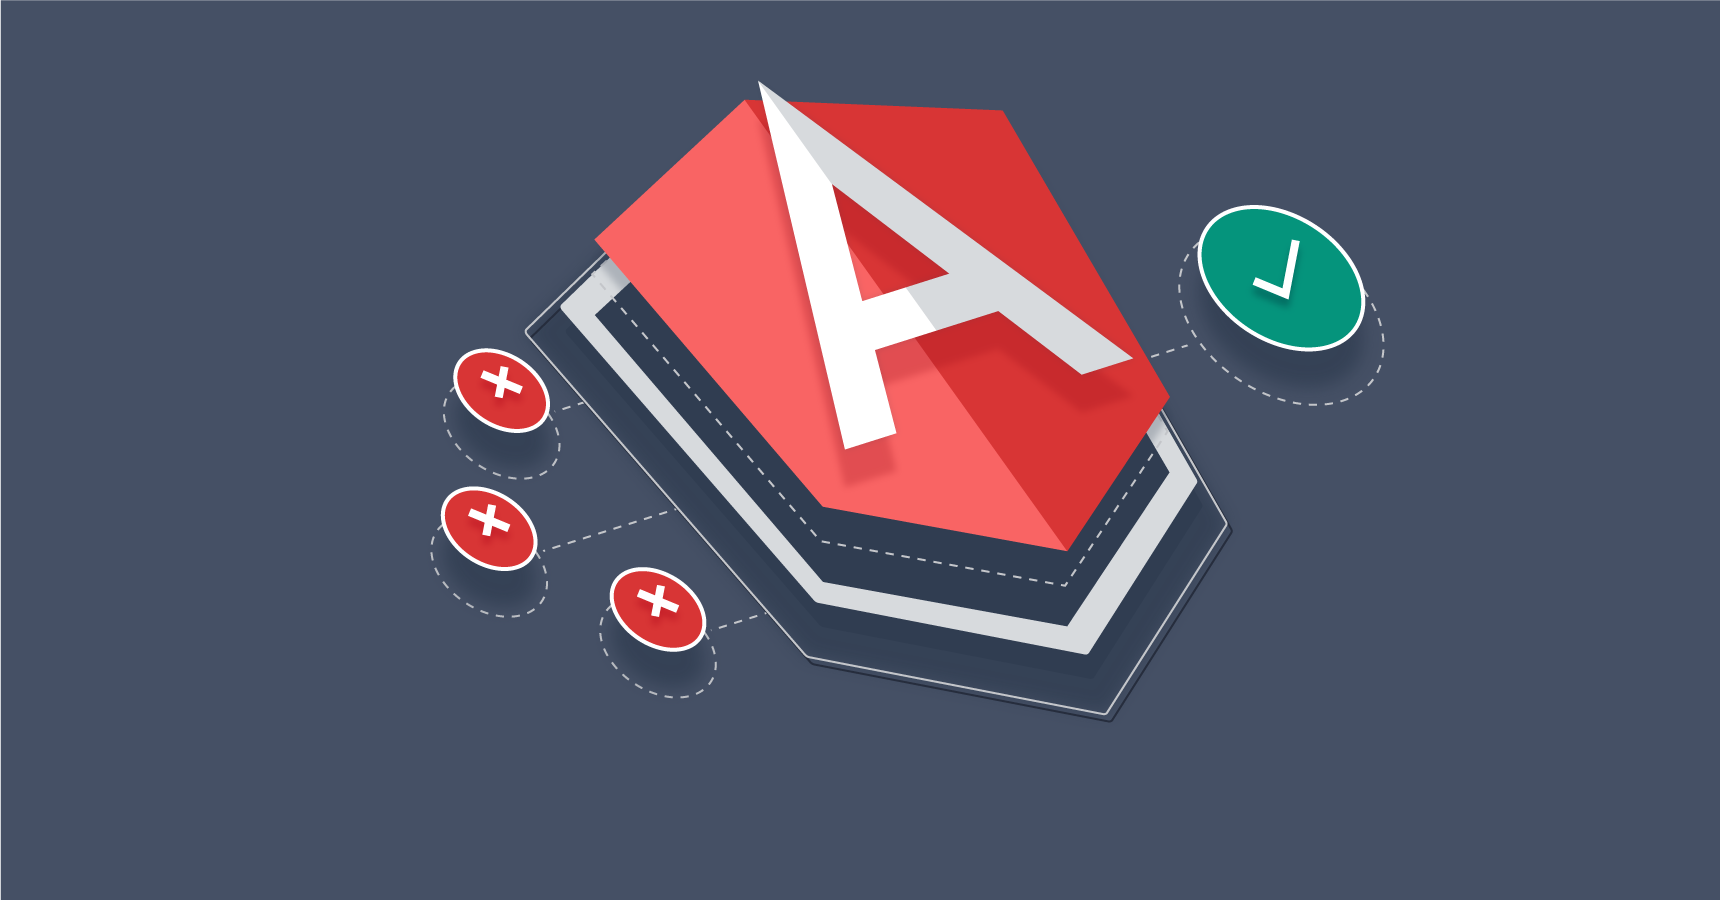 Top 18 Most Common AngularJS Mistakes That Developers Make | Toptal